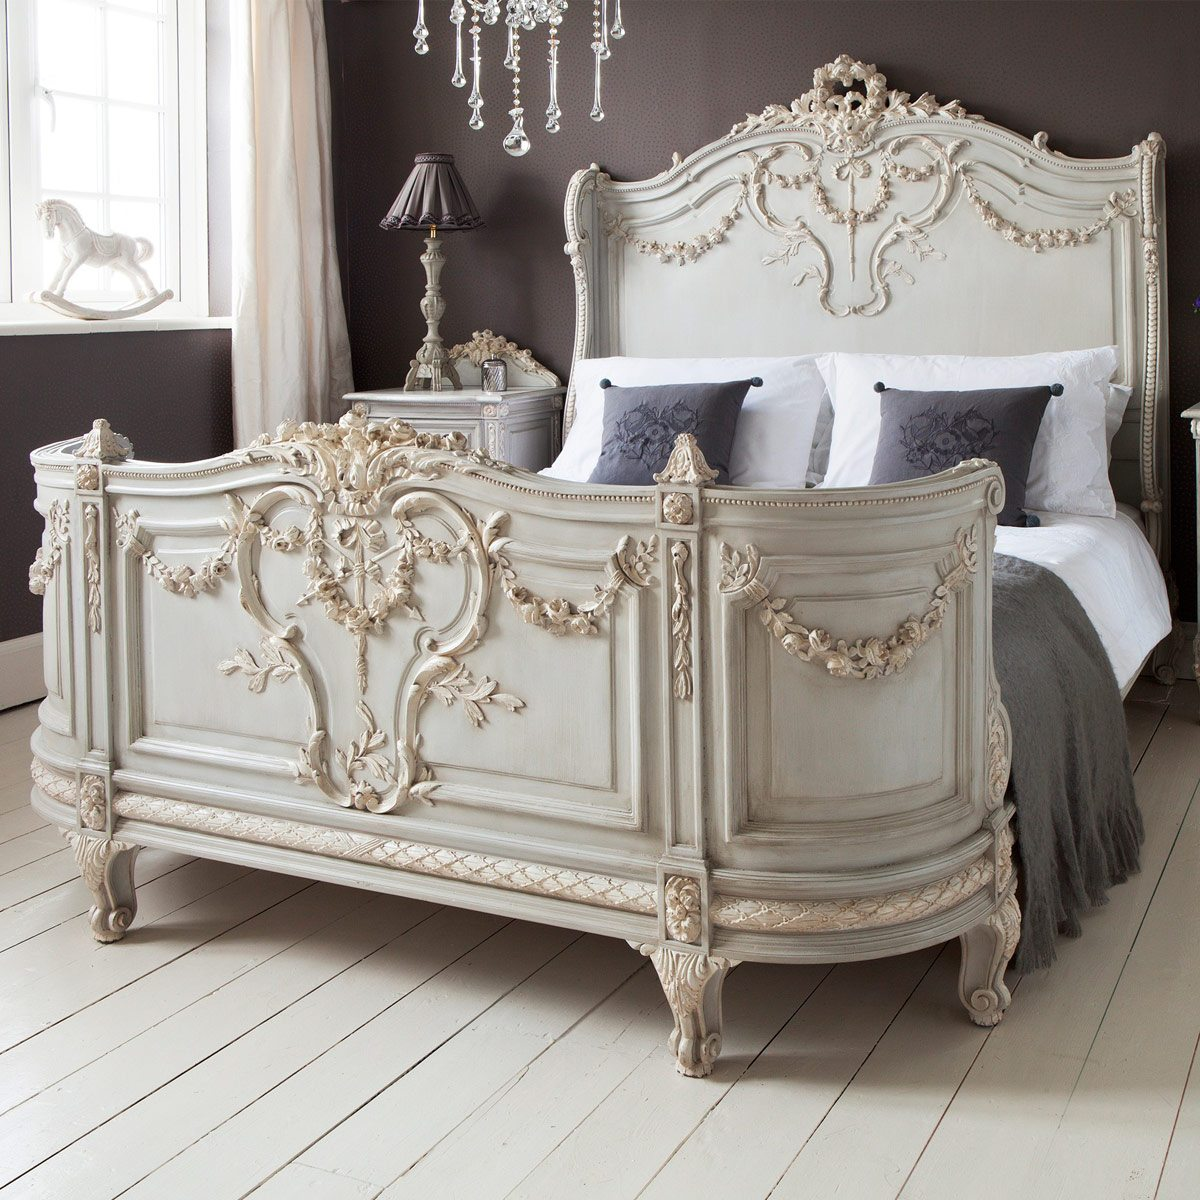 Bonaparte french bed french bedroom company for Decor company